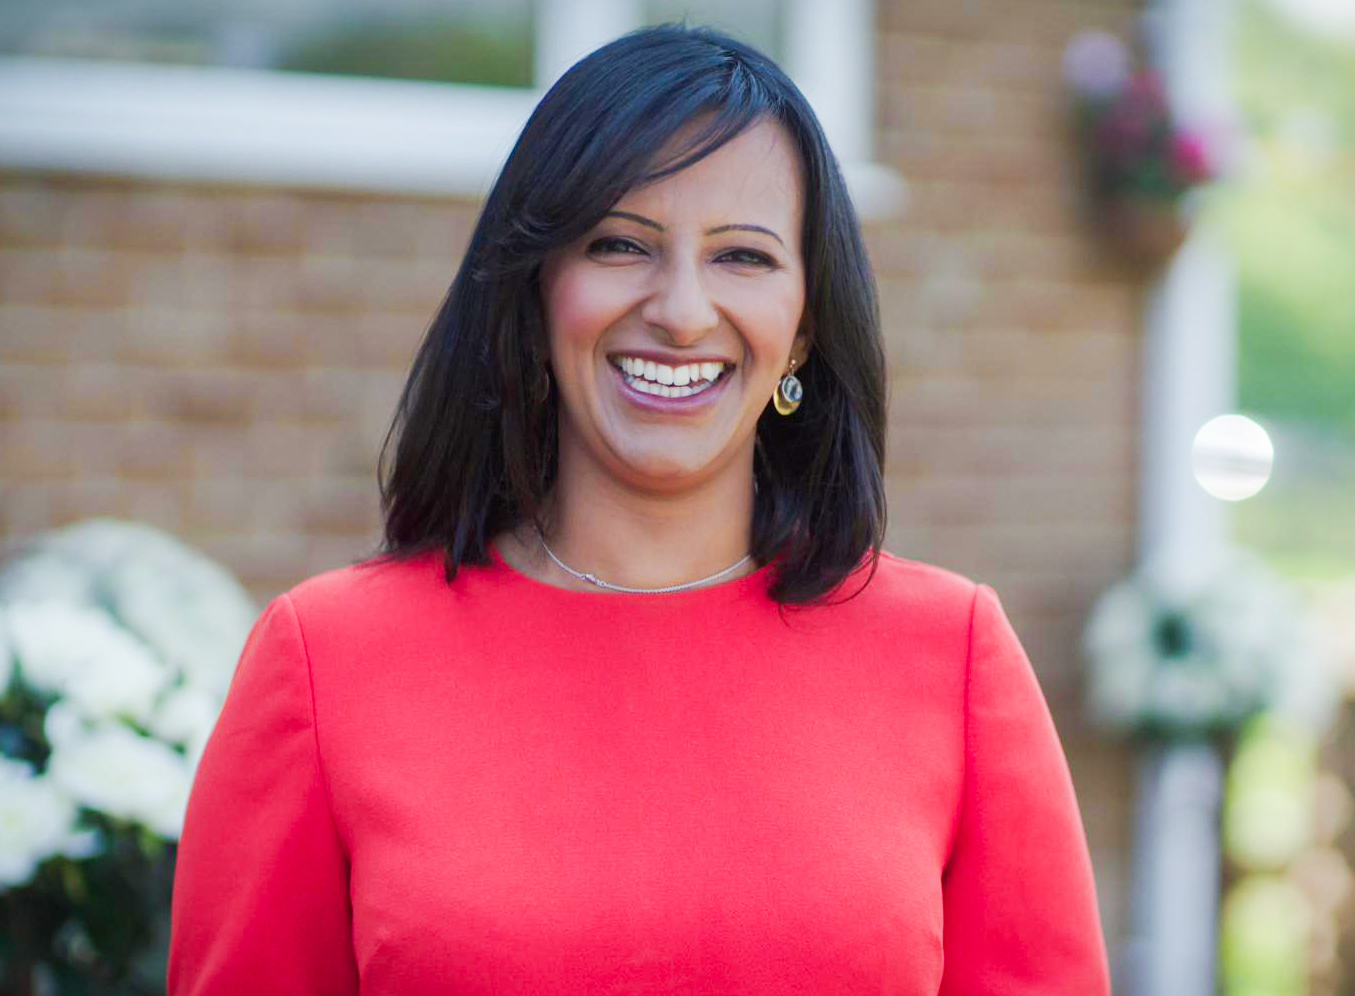 New role for Ranvir